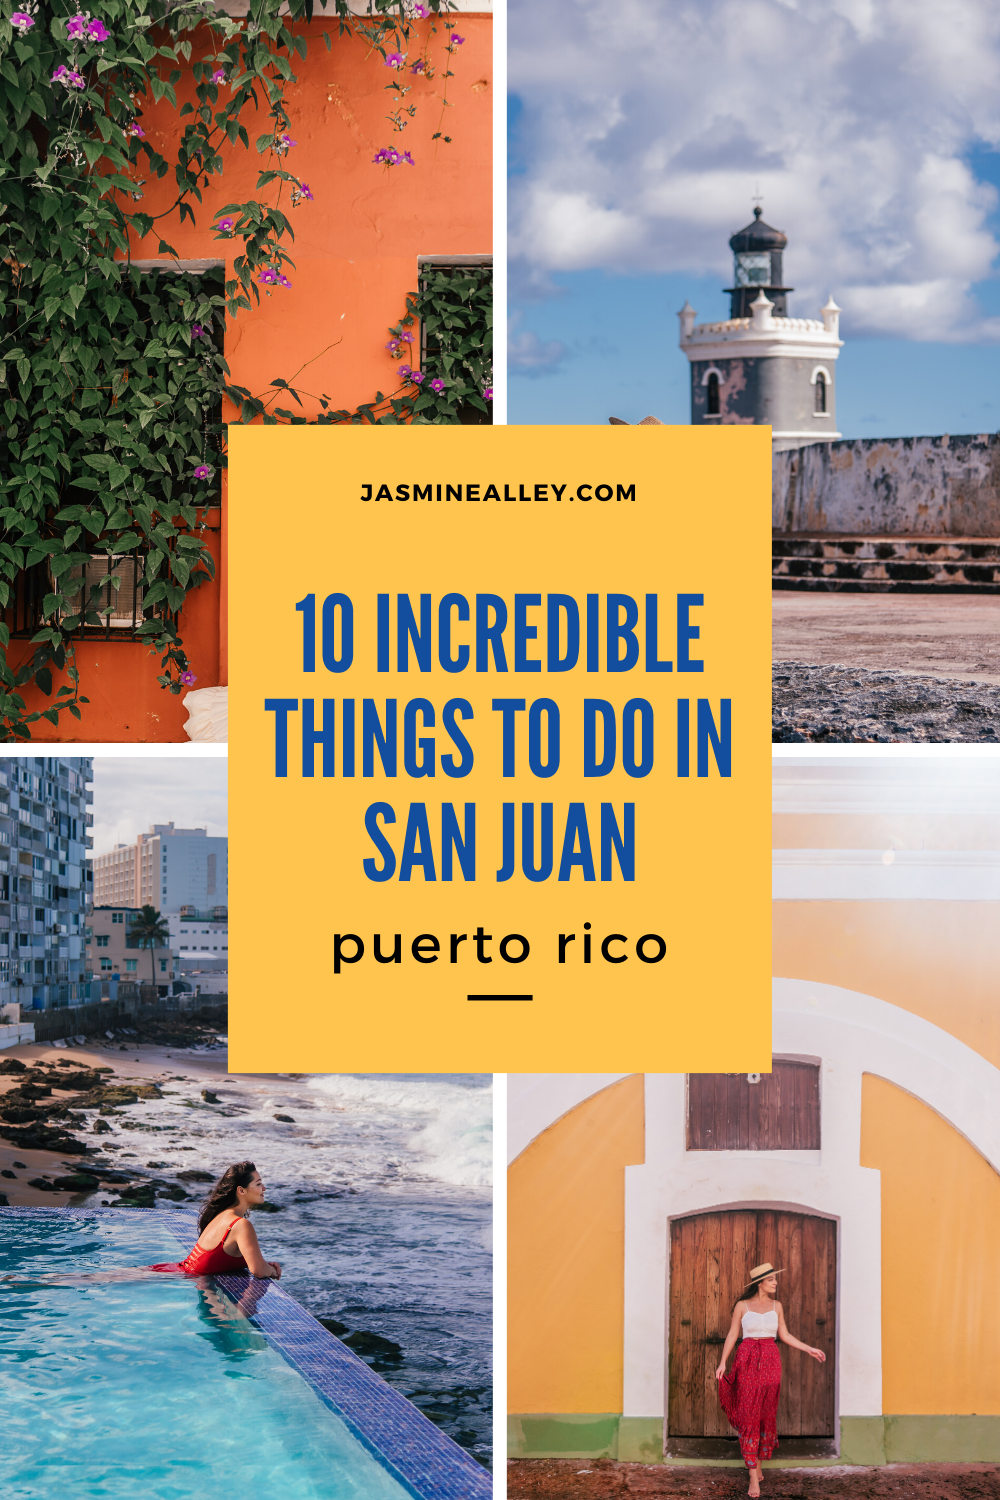 Heading to Puerto Rico? Here are the best things to do in and around San Juan, Puerto Rico. I compiled this list after two visits to Puerto Rico; the most recent one was during the earthquake, so we stayed close to San Juan and fell in love with these ten gems! From El Yunque and rainforest adventures to historic forts and the colorful buildings of Old San Juan, you\'ll find the best things to do on this list! #puertorico #worldtravels #travelblogger #sanjuanpuertorico #travelblog